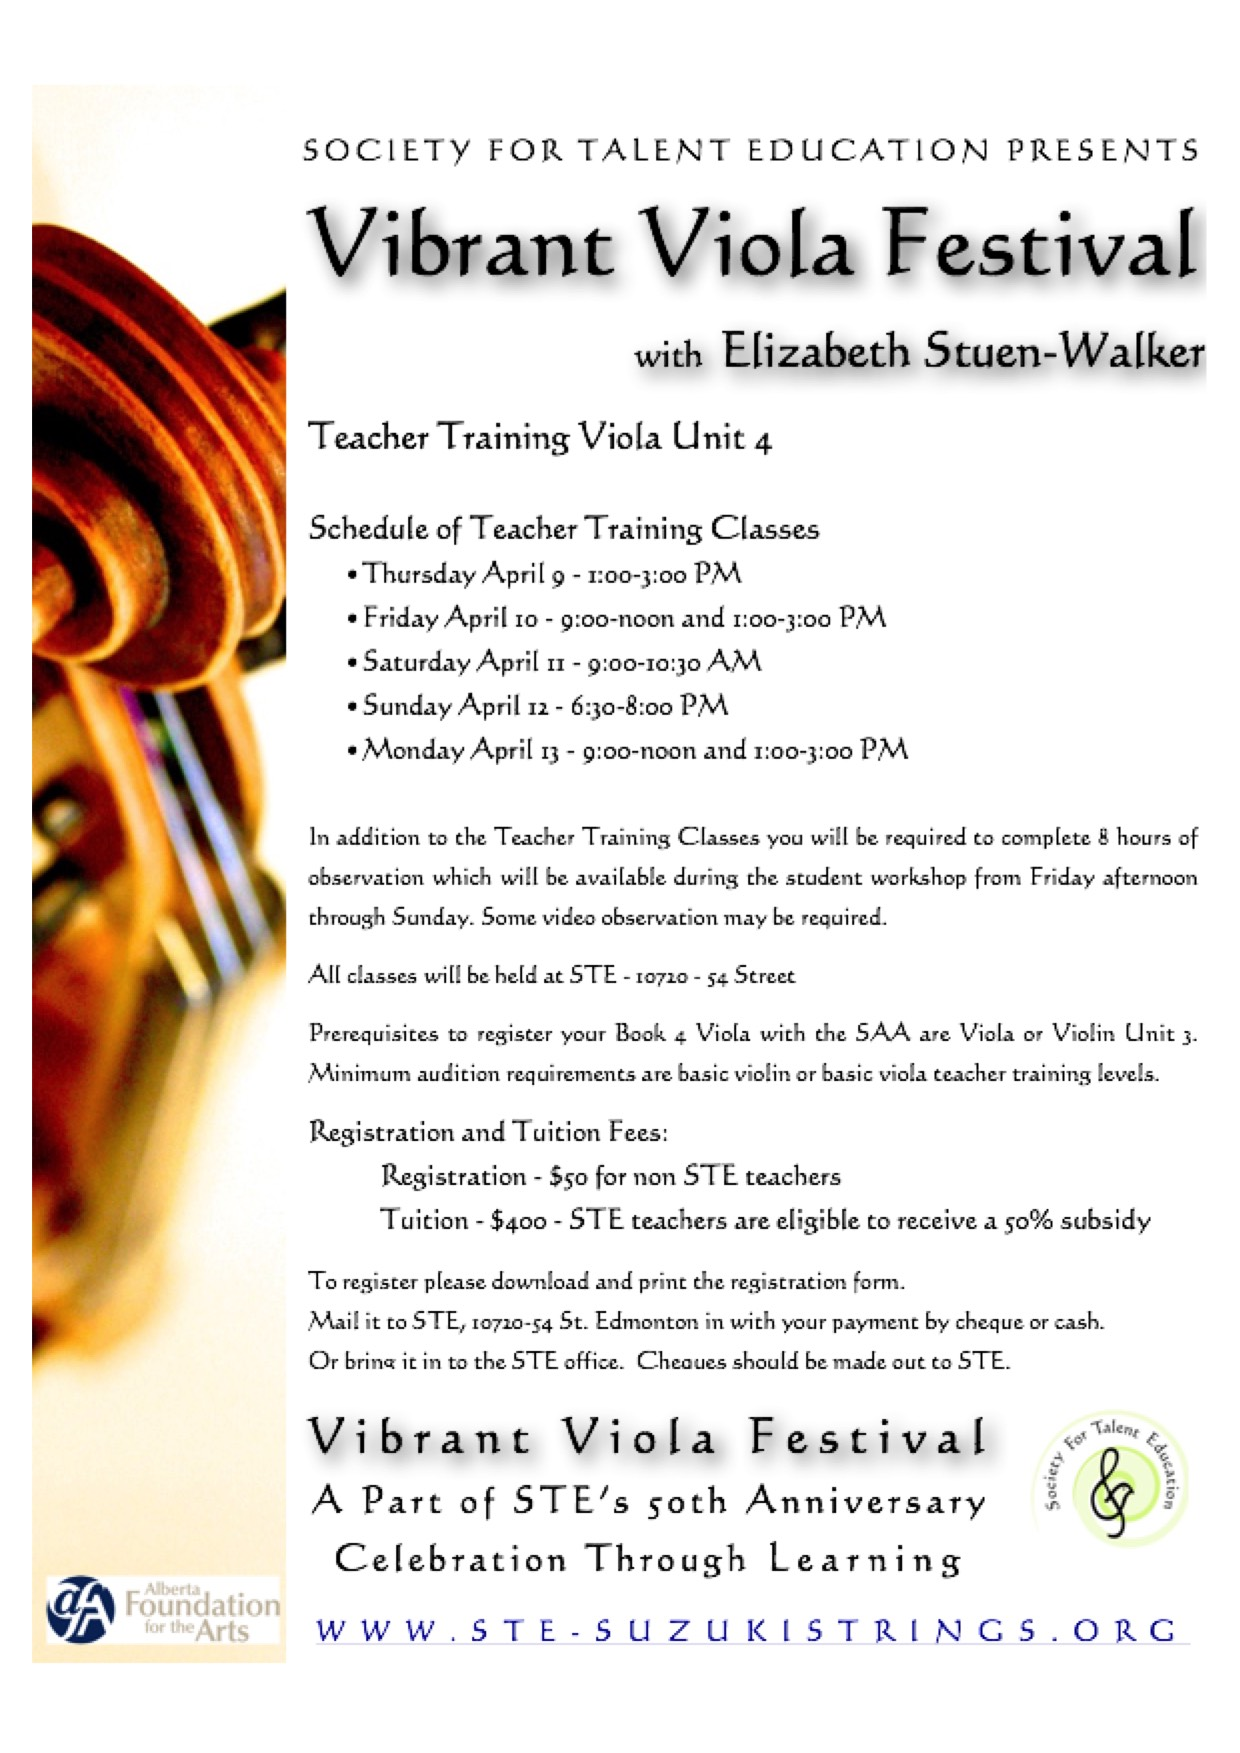 vibrant viola festival teacher training notice